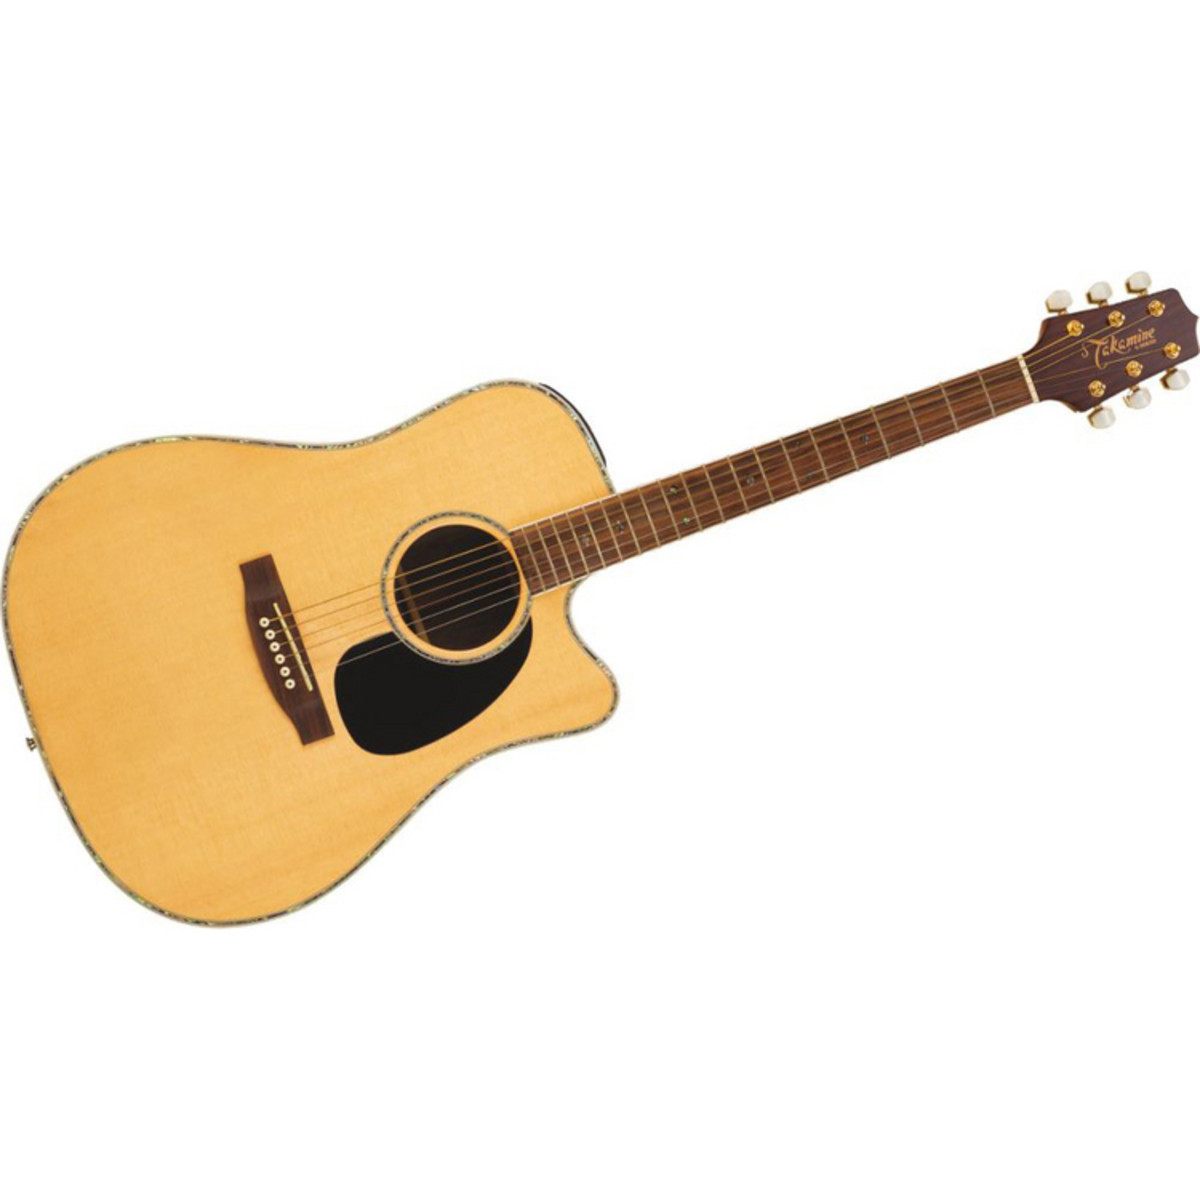 How to Date a Takamine Guitar